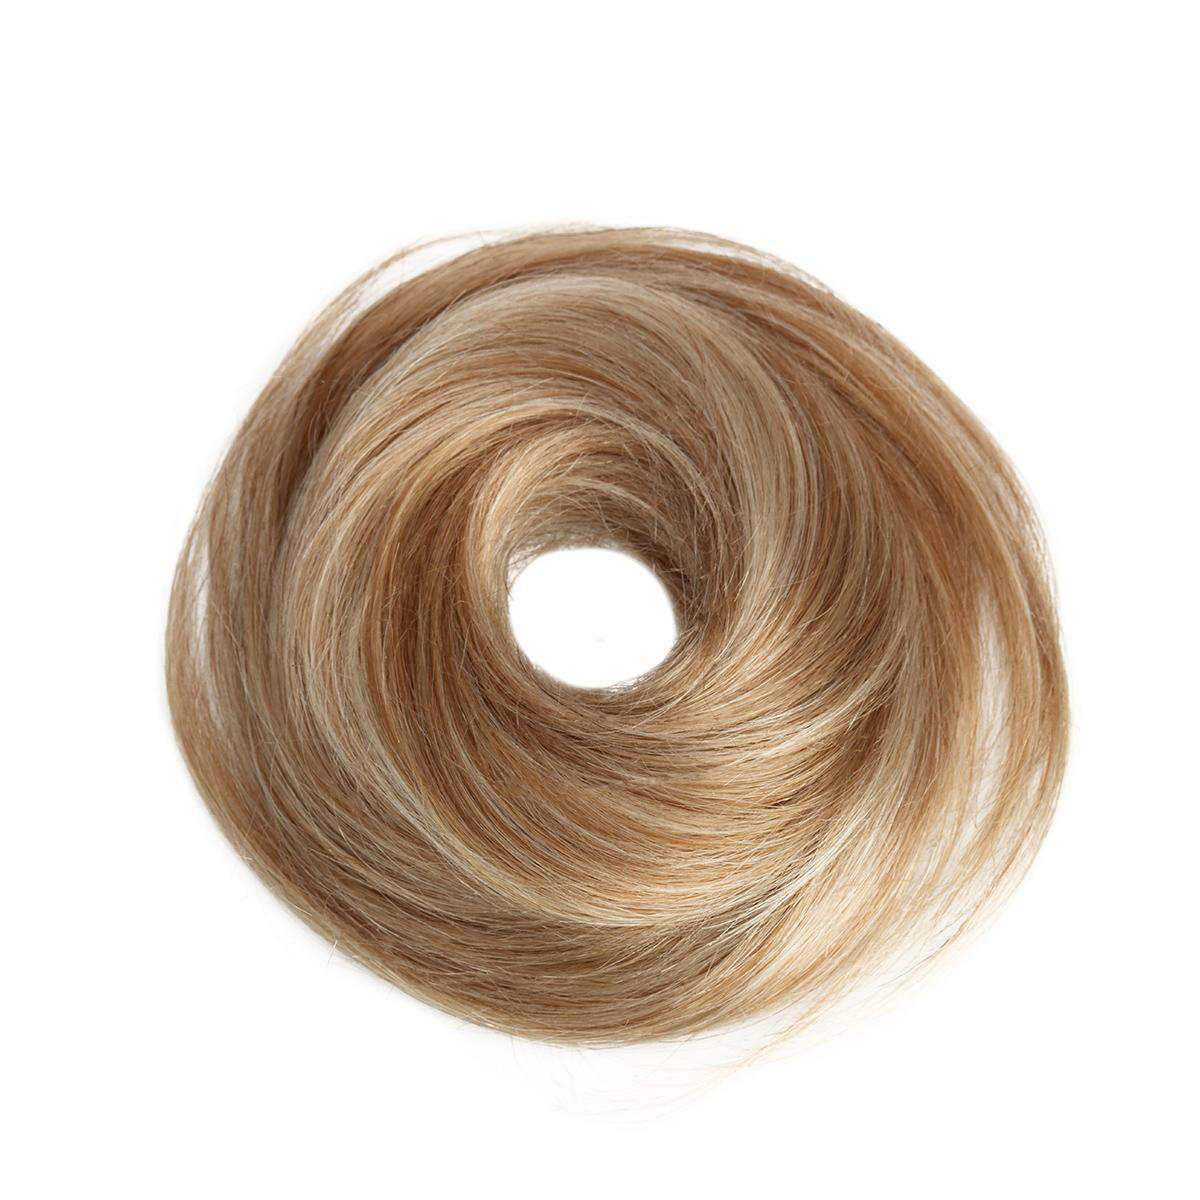 Volume Hair Scrunchie 40 G Scrunchie with real hair M7.3/10.8 Cendre Ash Blonde Mix